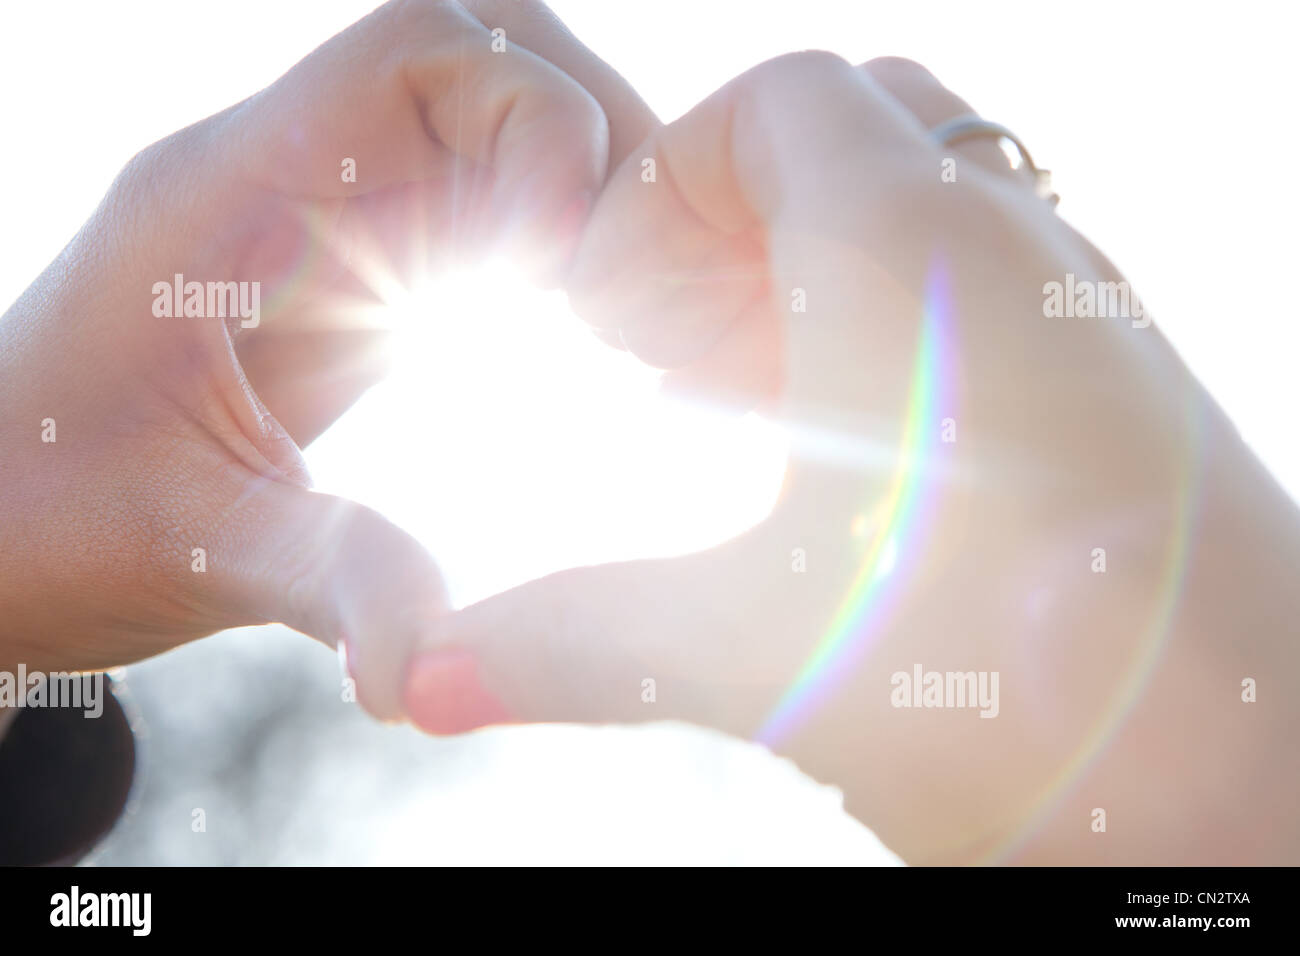 Hands making heart shape - Stock Image